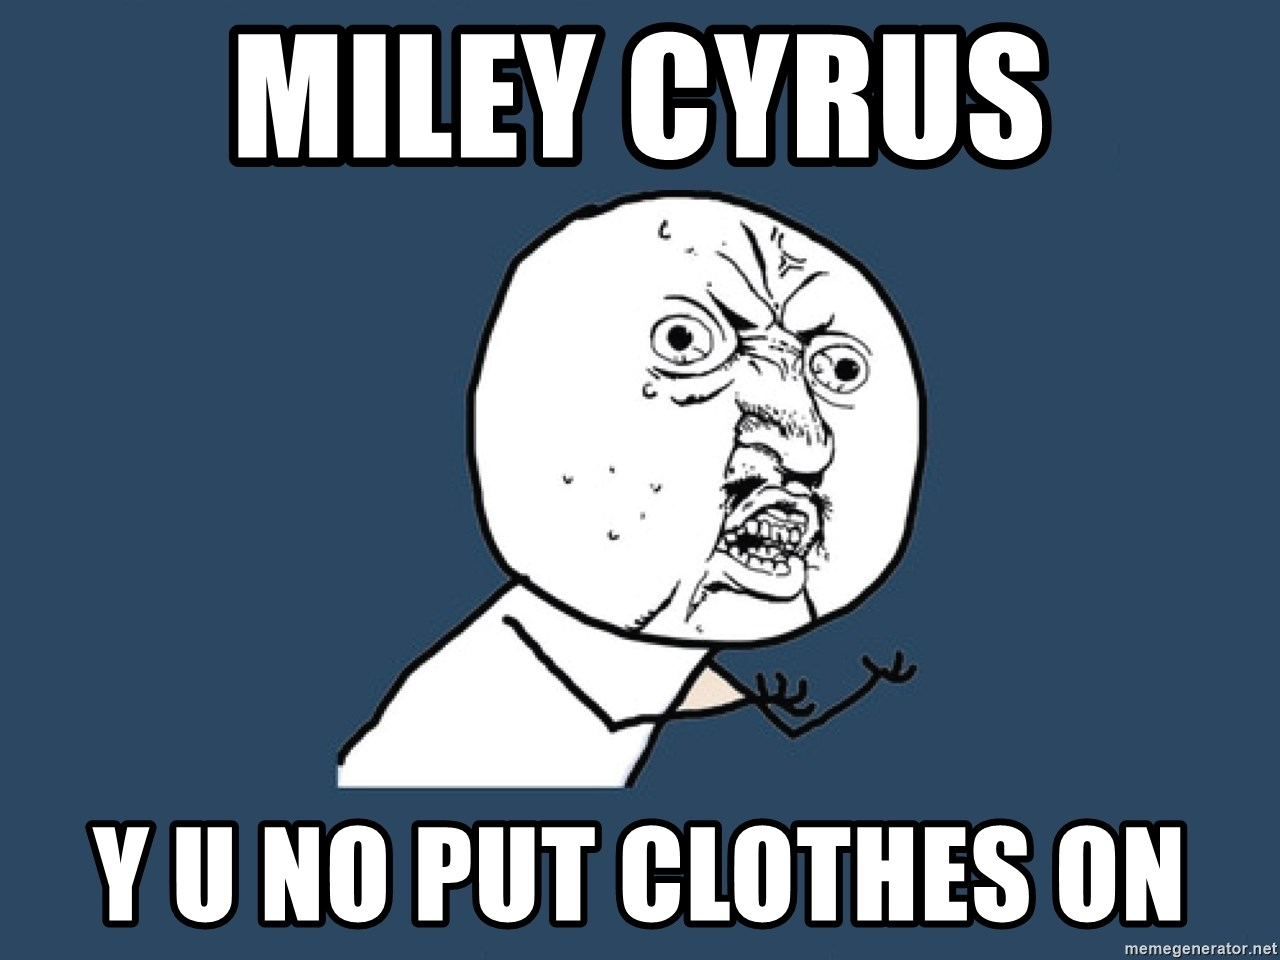 Y U No - Miley Cyrus Y U NO PUT clothes ON